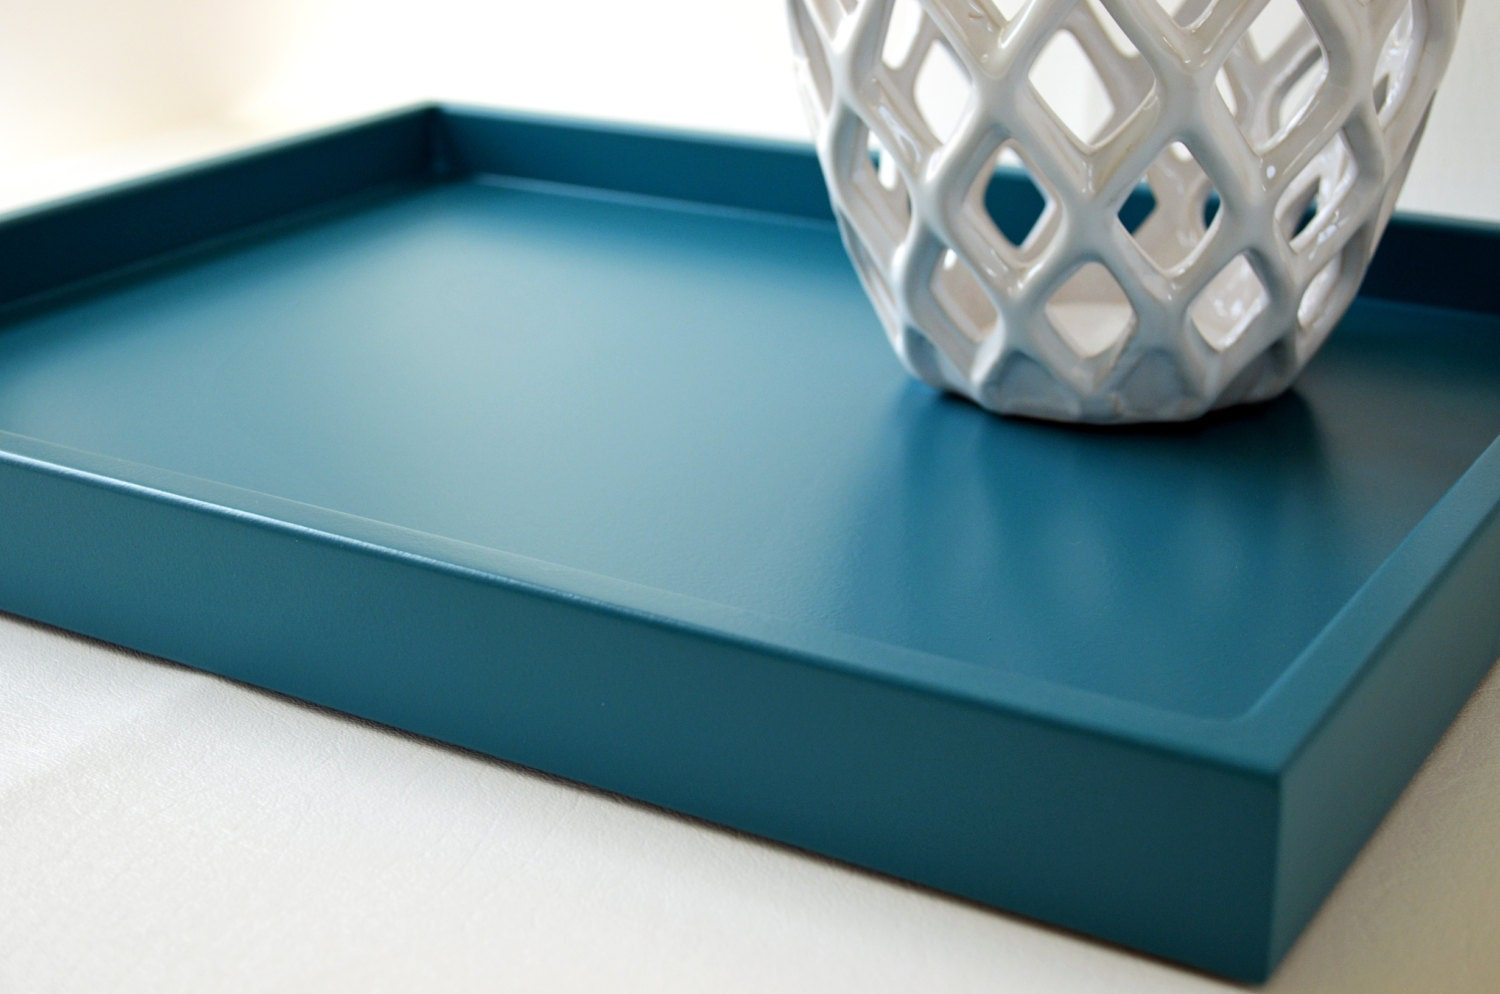 Teal blue 14 x 18 shallow wood decorative tray coffee table Decorative trays for coffee table